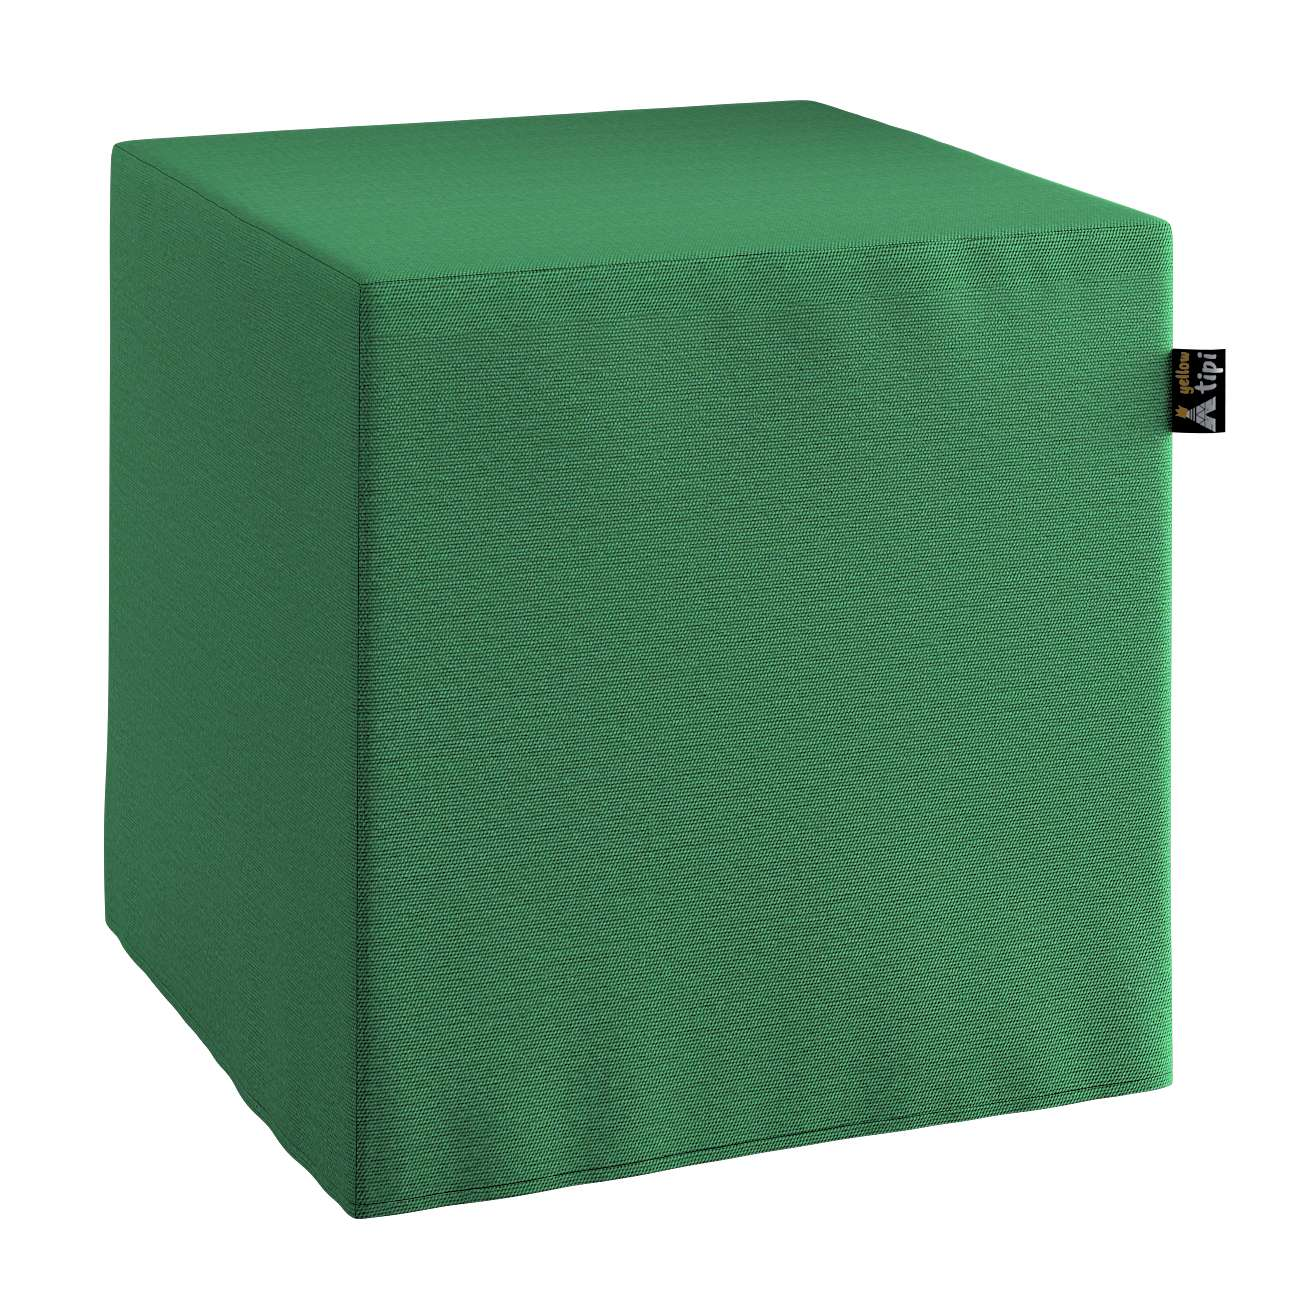 Nano cube pouf in collection Happiness, fabric: 133-18